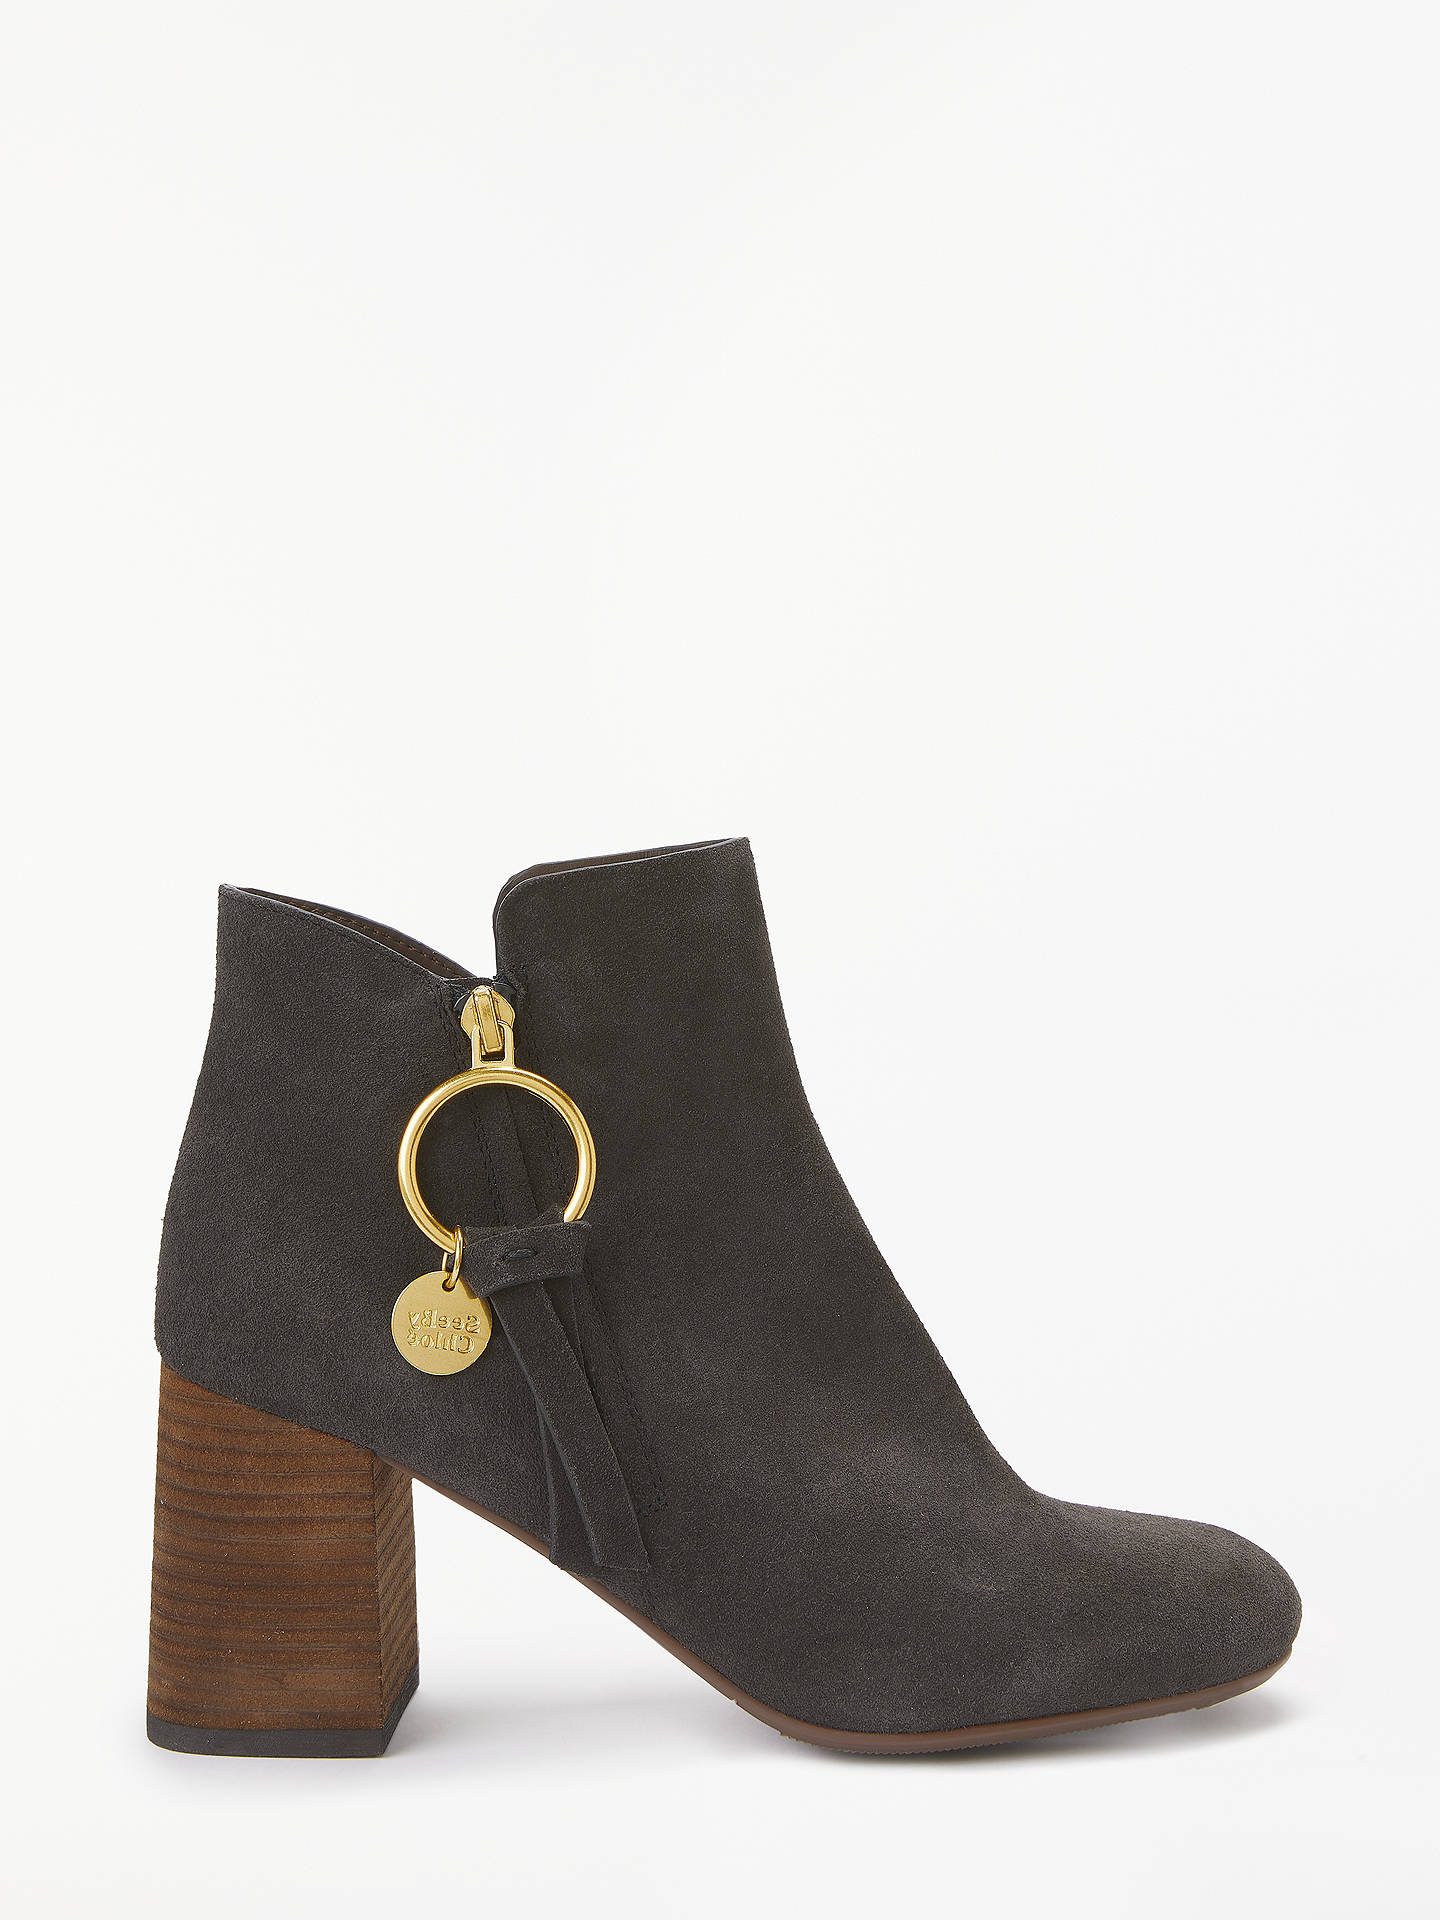 0710b3b0079 See By Chloé Block Heel Ankle Boots at John Lewis & Partners